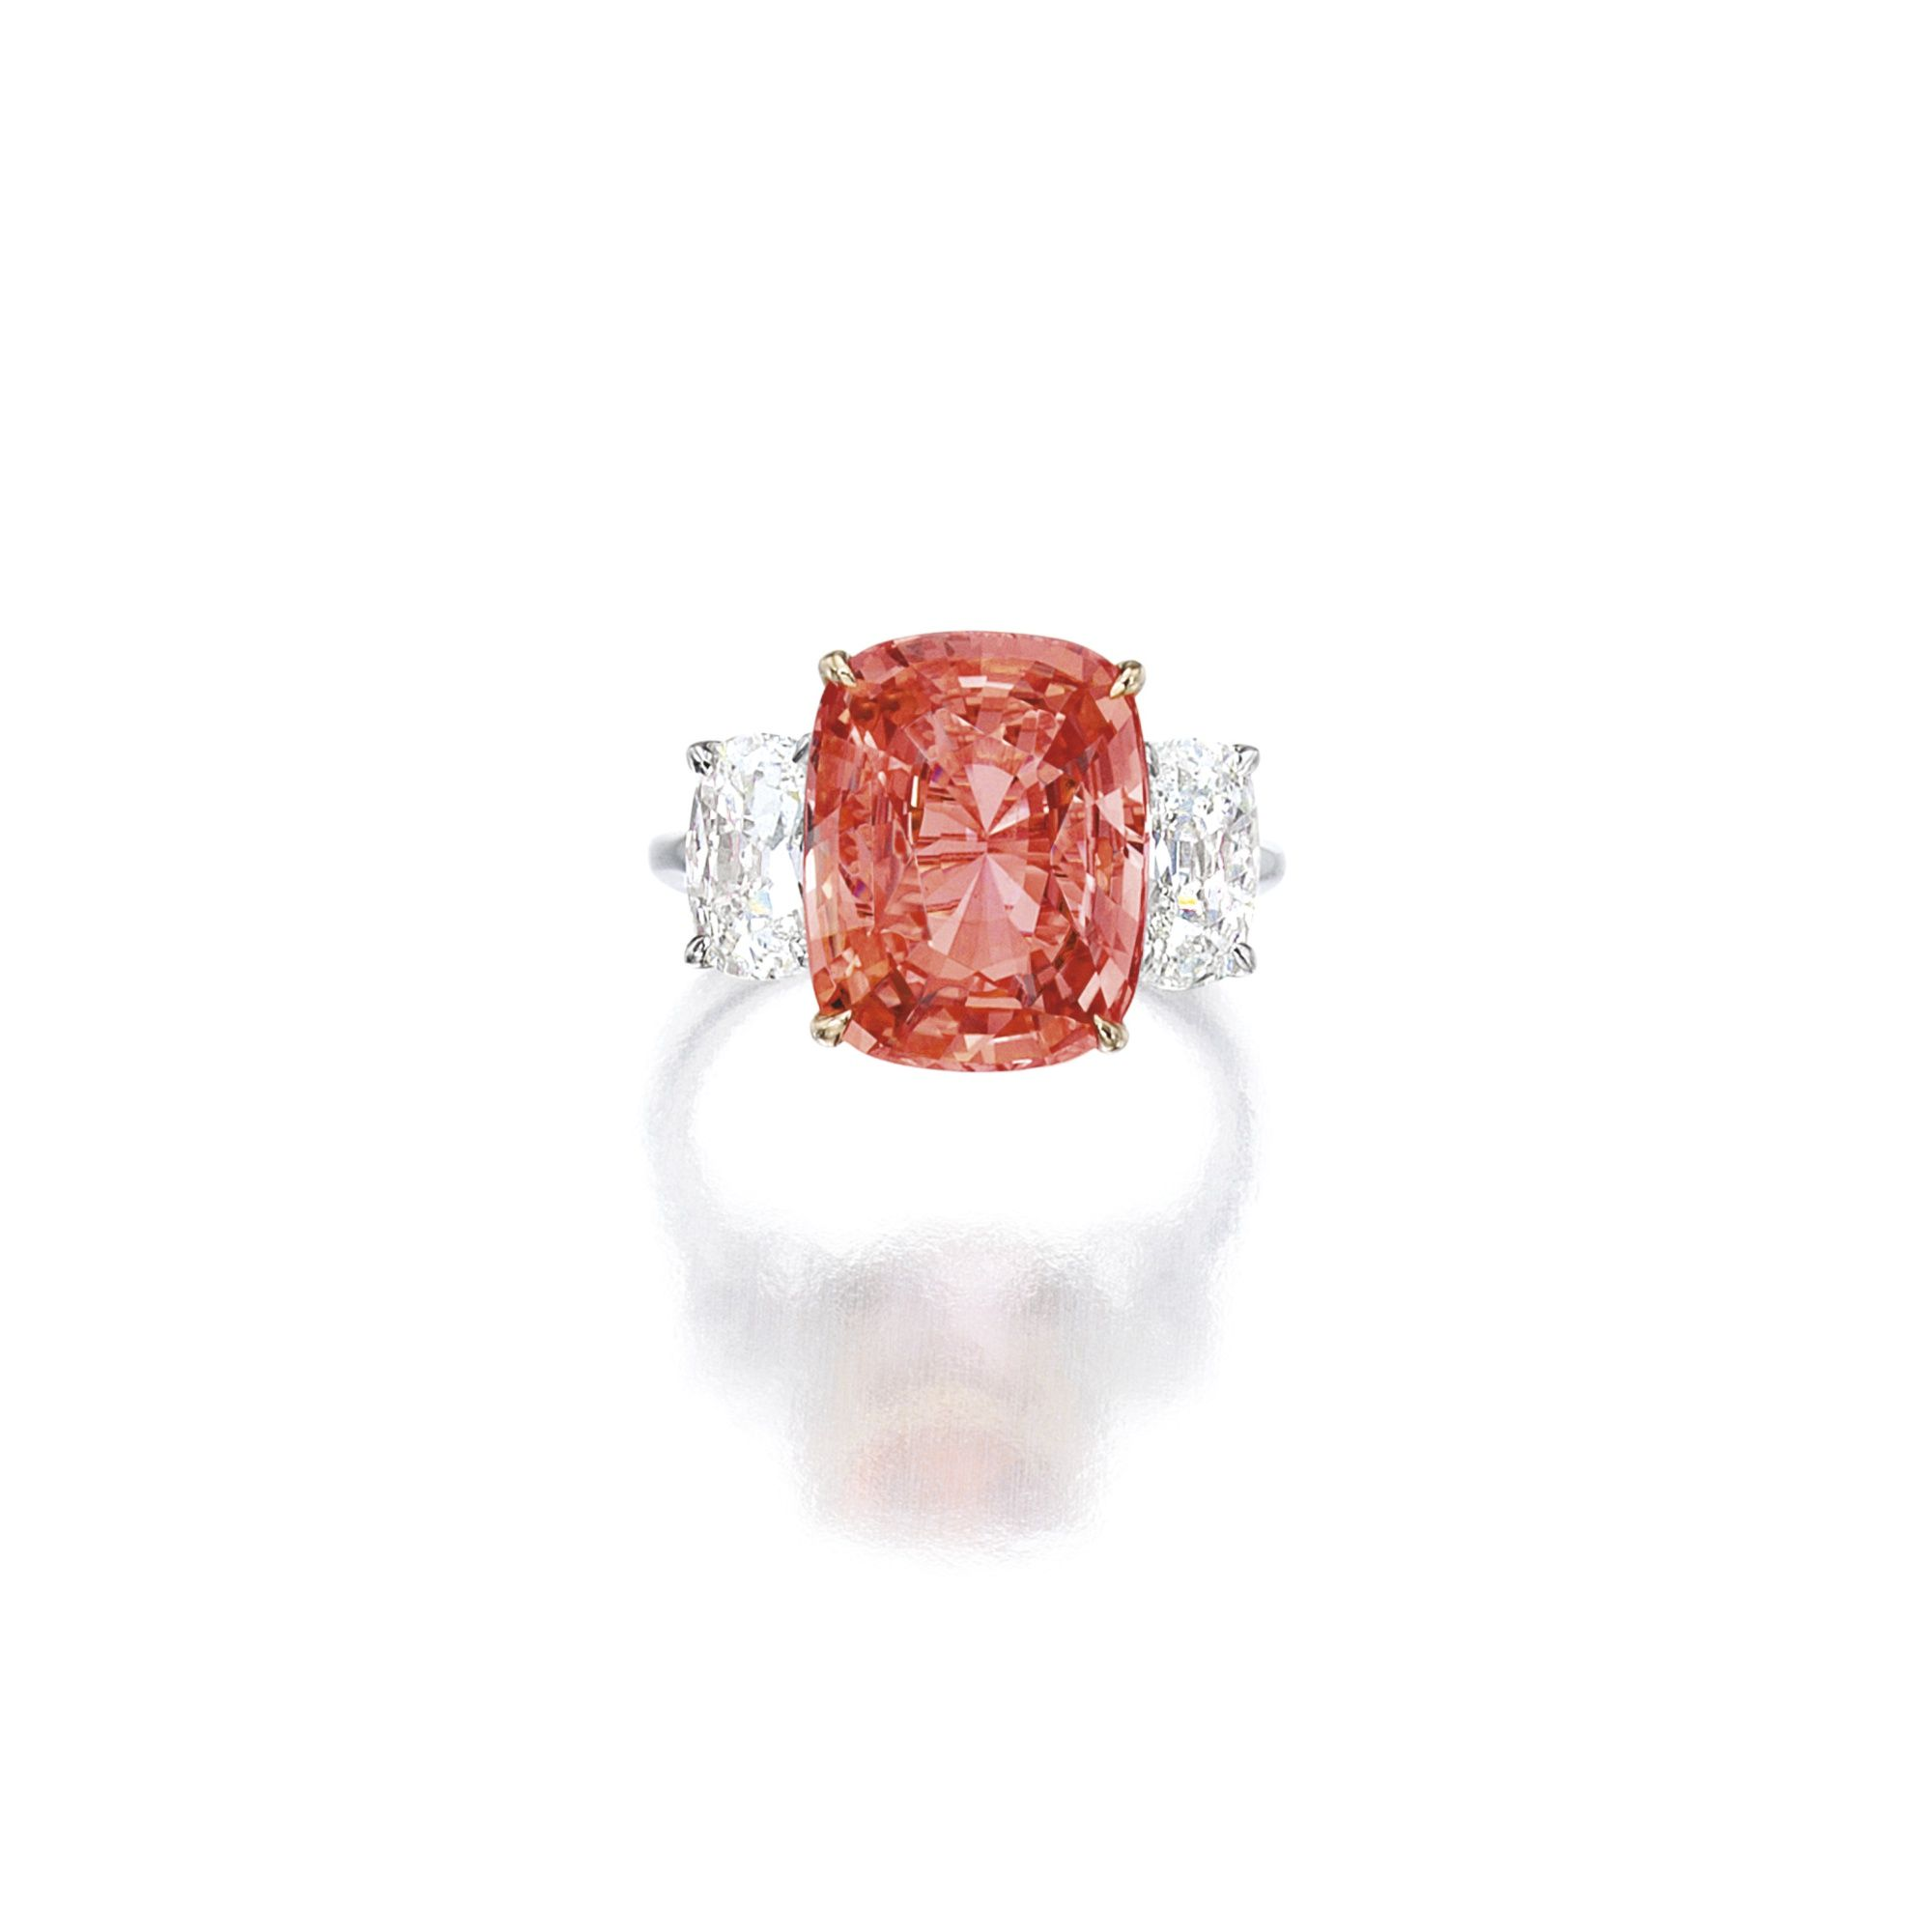 Padparadscha sapphire and diamond ring set with a cushionshaped